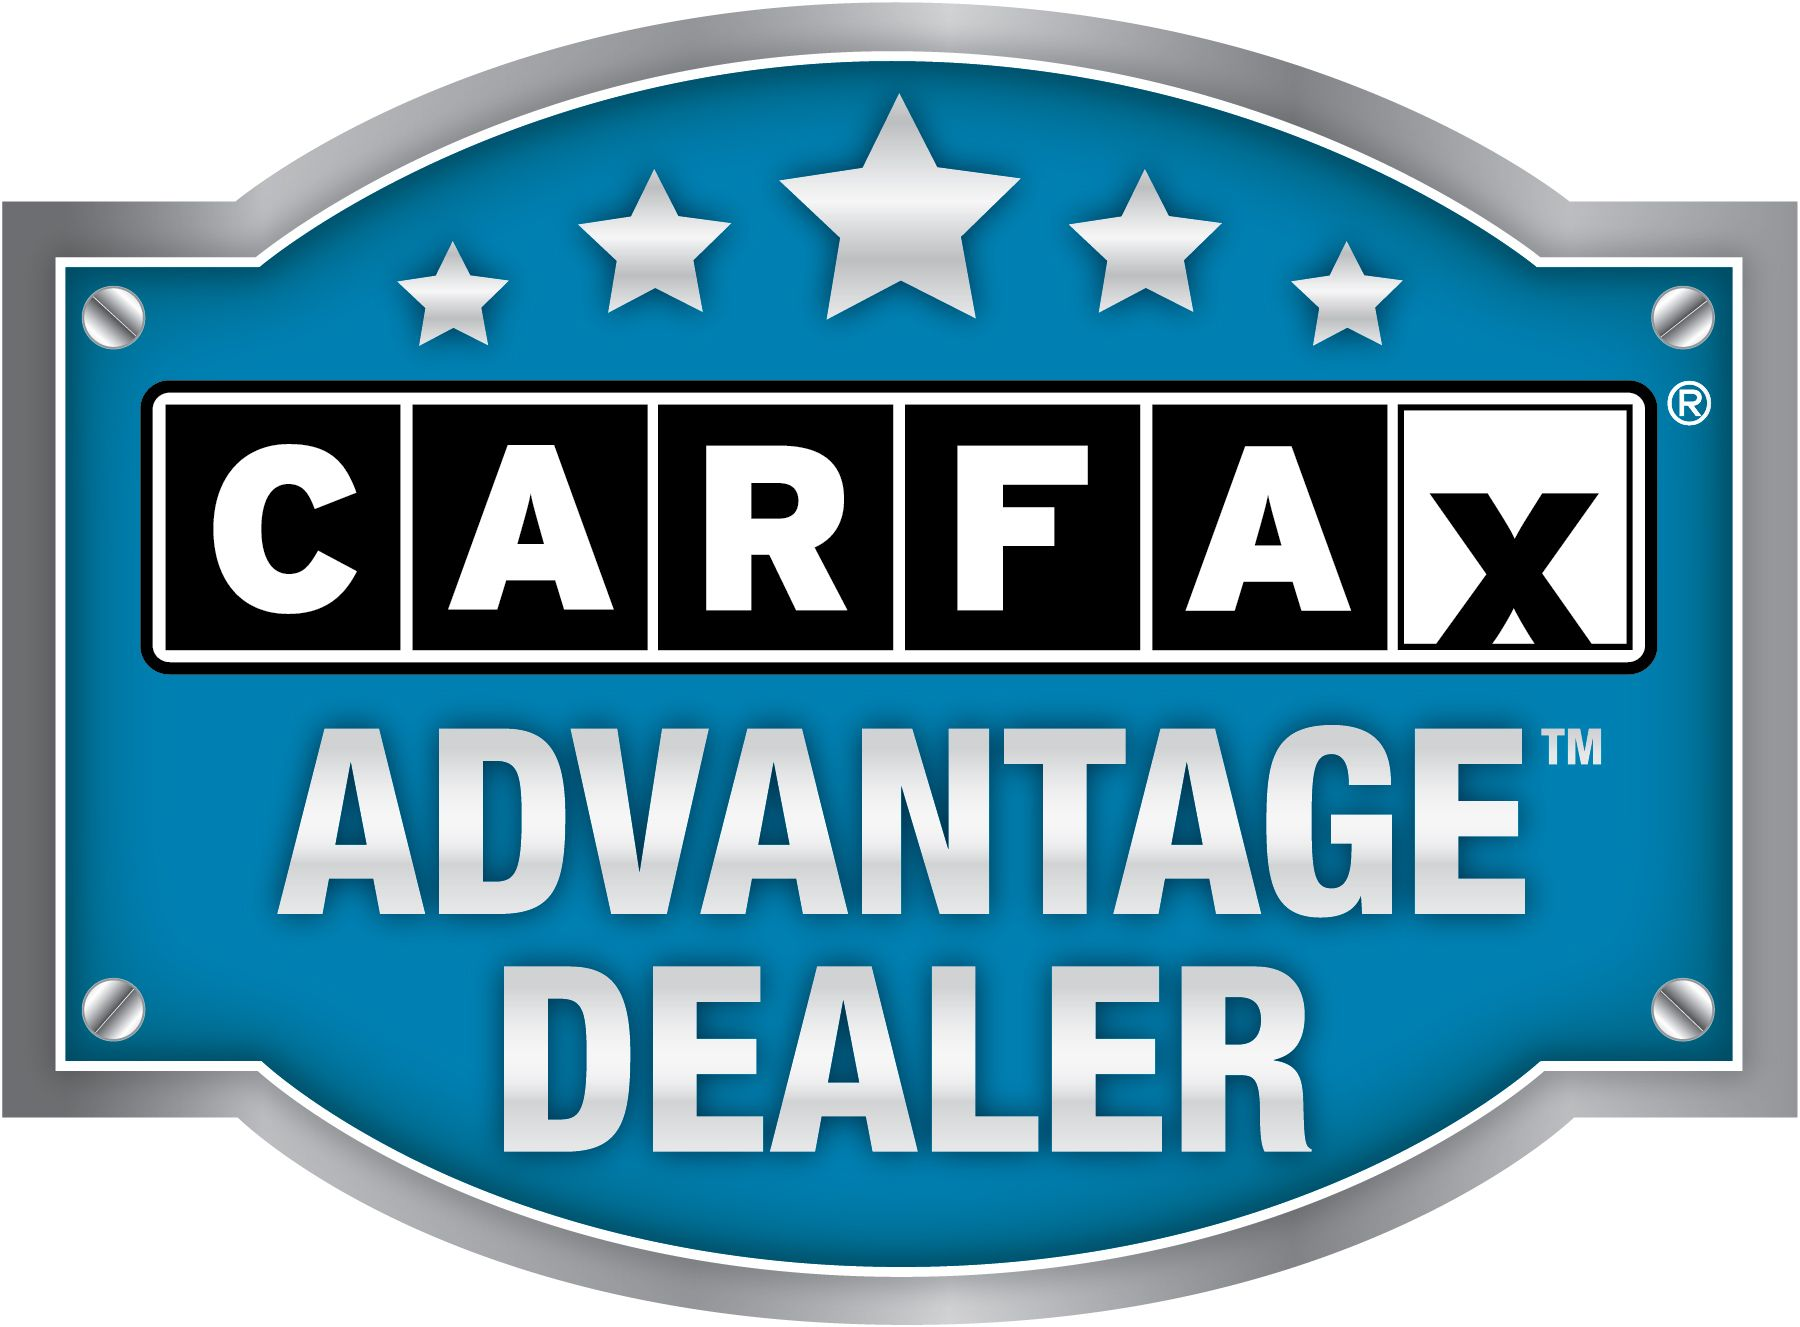 It s easy to used cars today from dealers like Carfax thanks to